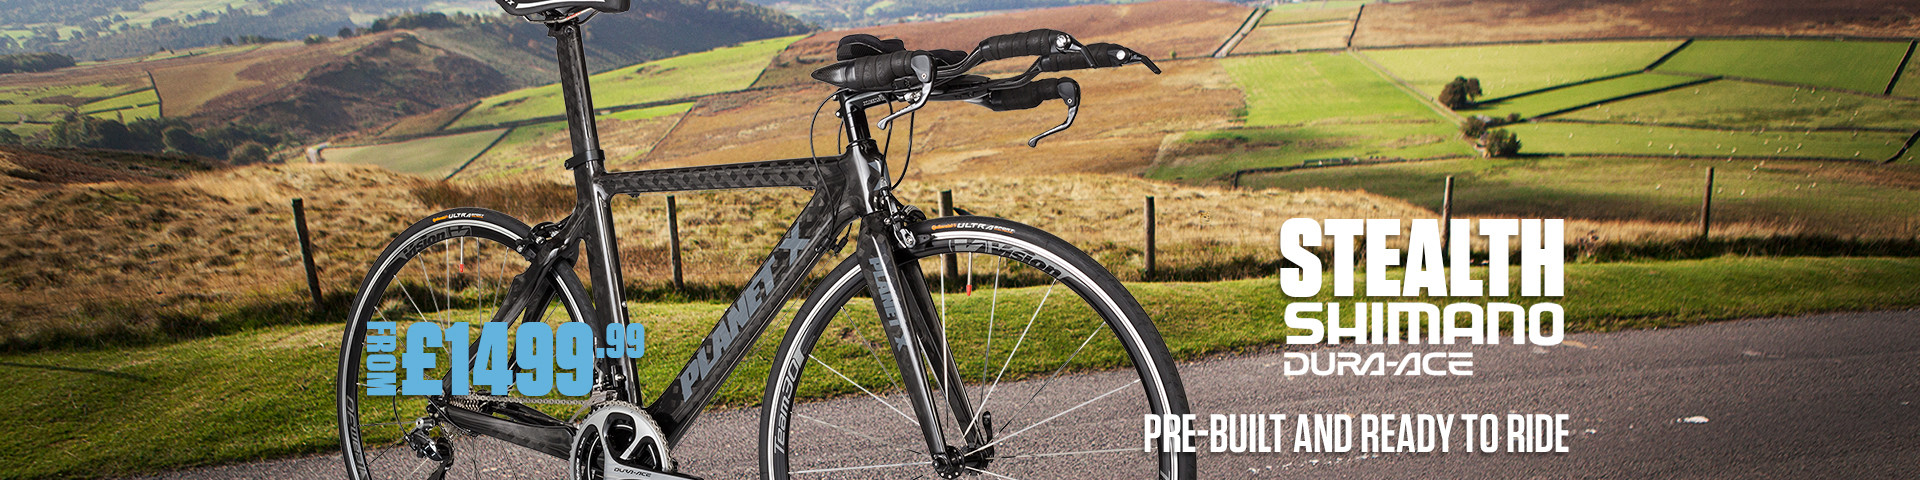 Planet X Stealth Shimano Dura-Ace 900 Time Trial Bike